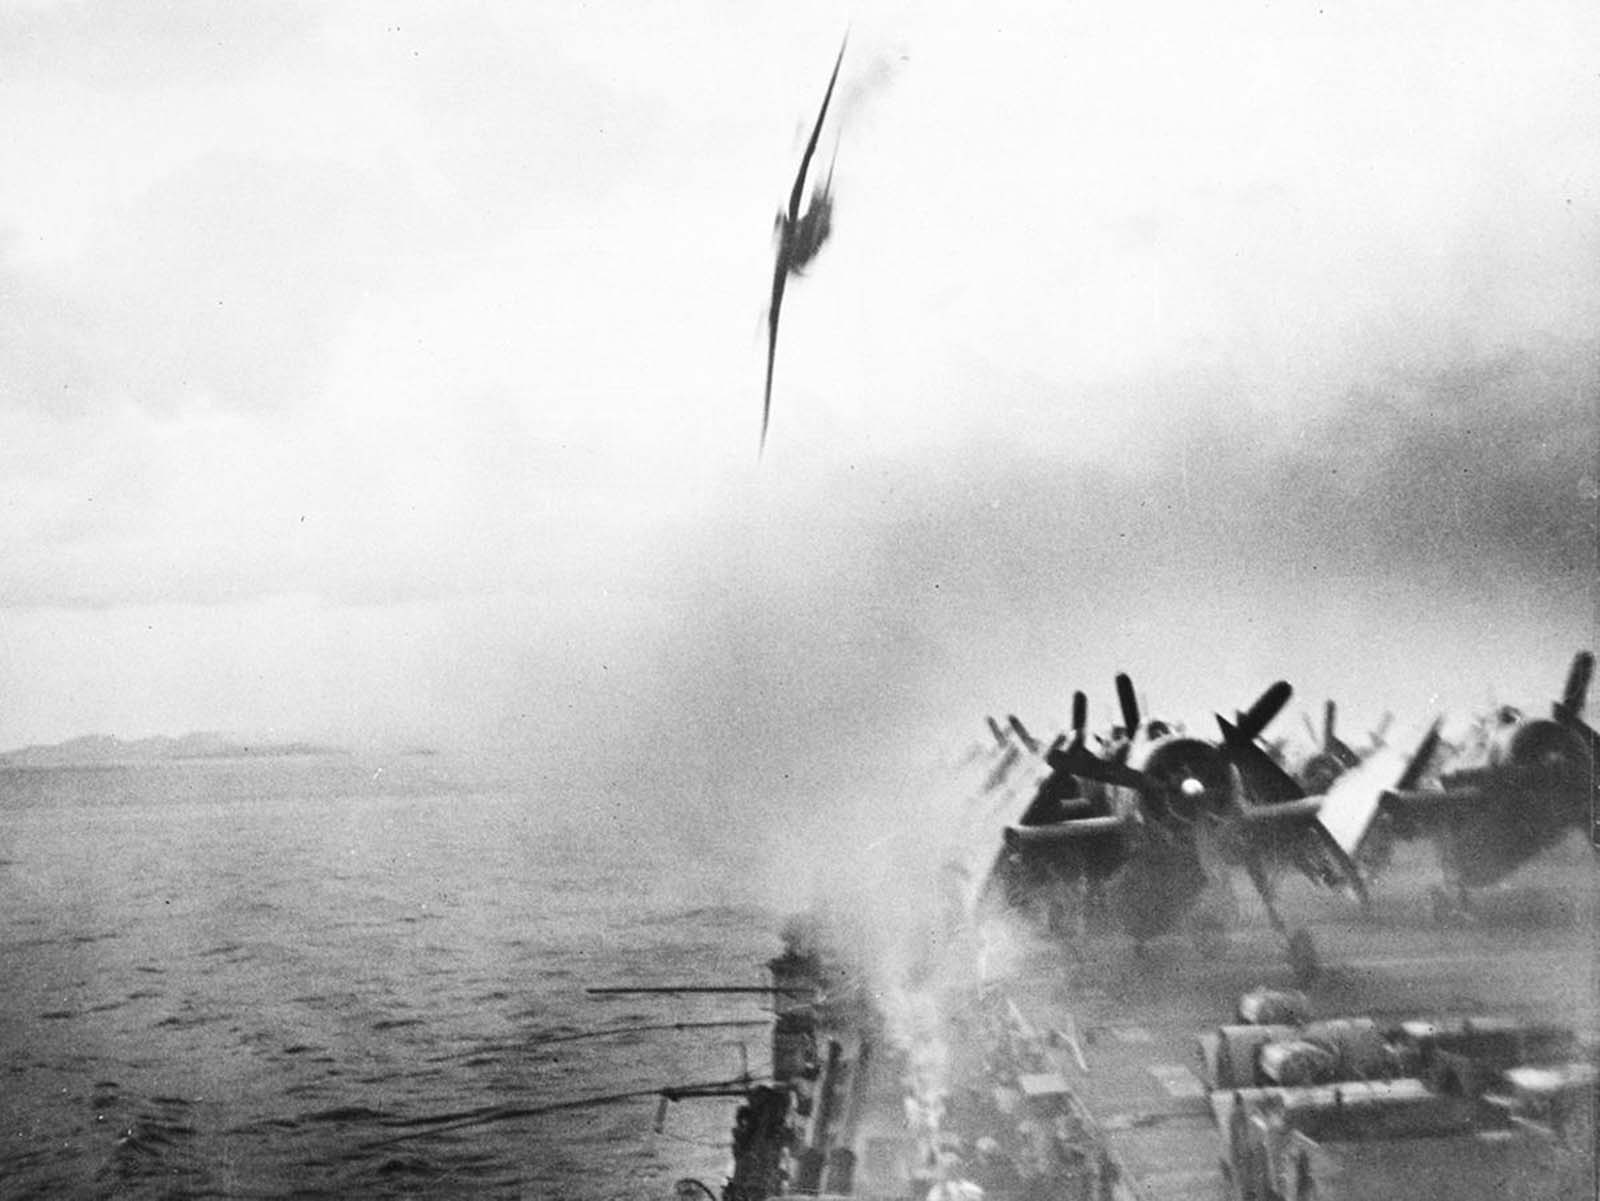 Anti-aircraft gunners, center foreground, pour a deadly stream of fire into an already-burning Japanese Kamikaze plane plummeting toward the flight deck of the USS Sangamon, a Navy escort carrier, during action in the Ryukyu Islands near Japan, on May 4, 1945. This suicide plane landed in the sea close to the carrier. Another Japanese aircraft later succeeded in hitting the ship deck, inflicting heavy damage.